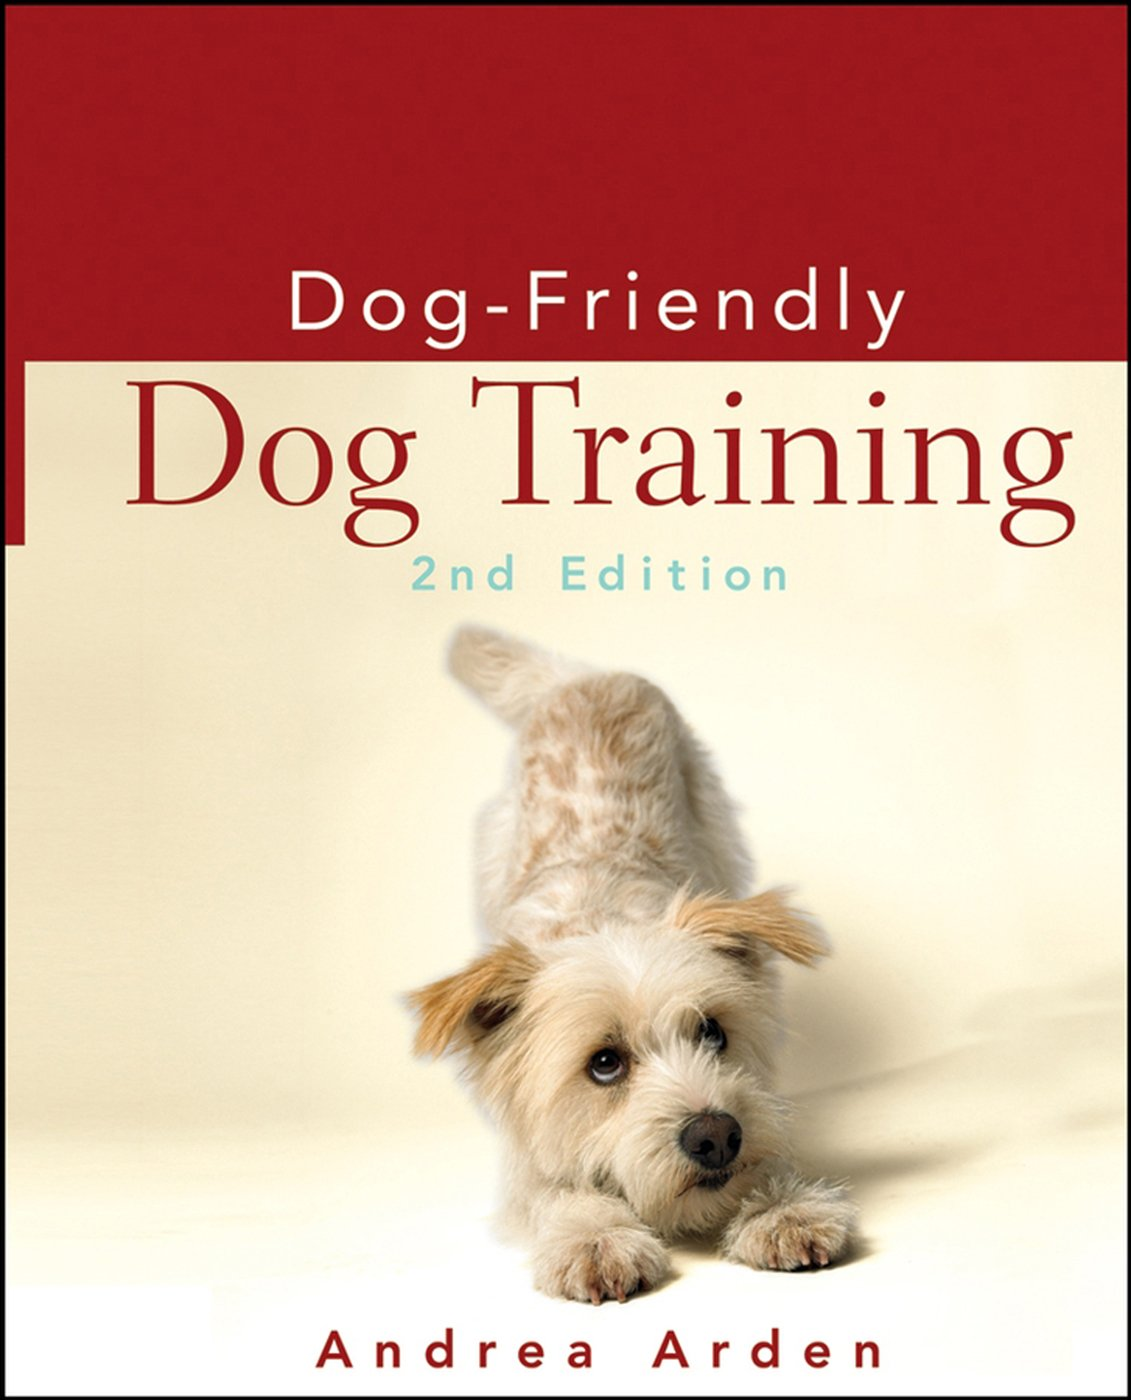 Awesome Lessons You Can Learn From Studying Dog Training